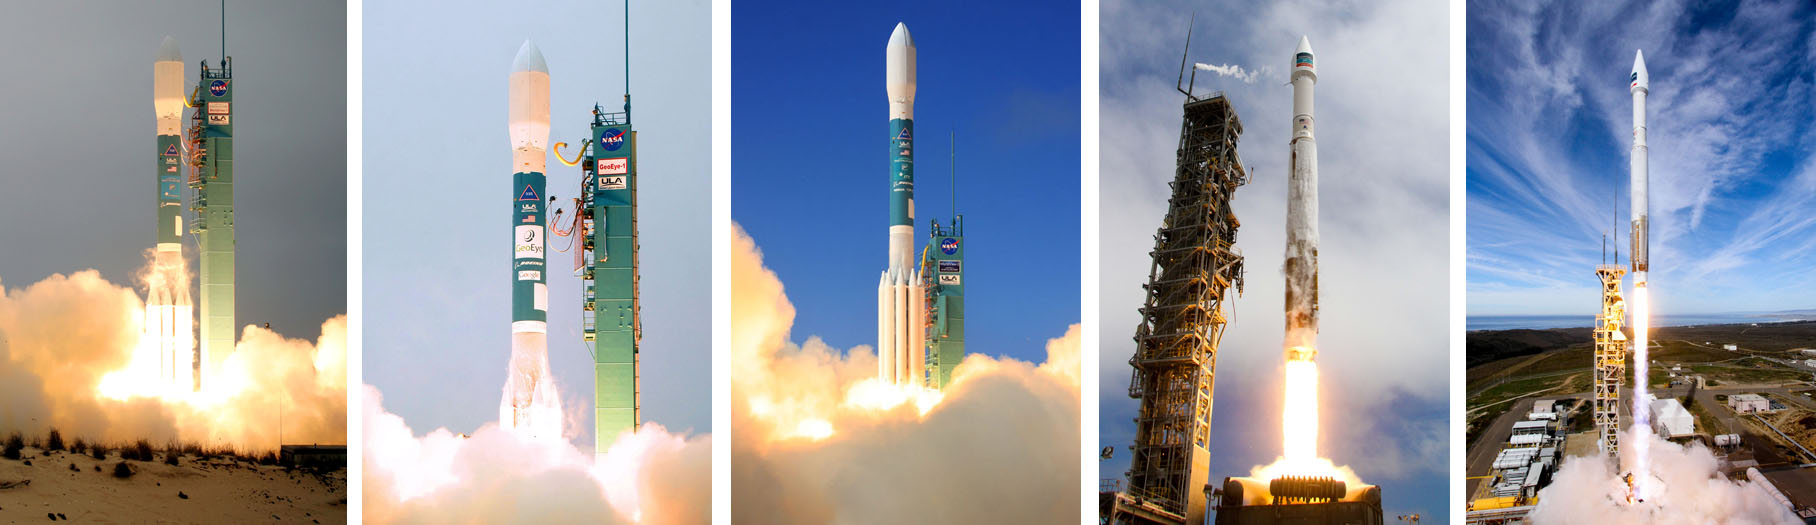 Commercial satellite launched to image the Earth in high-resolution